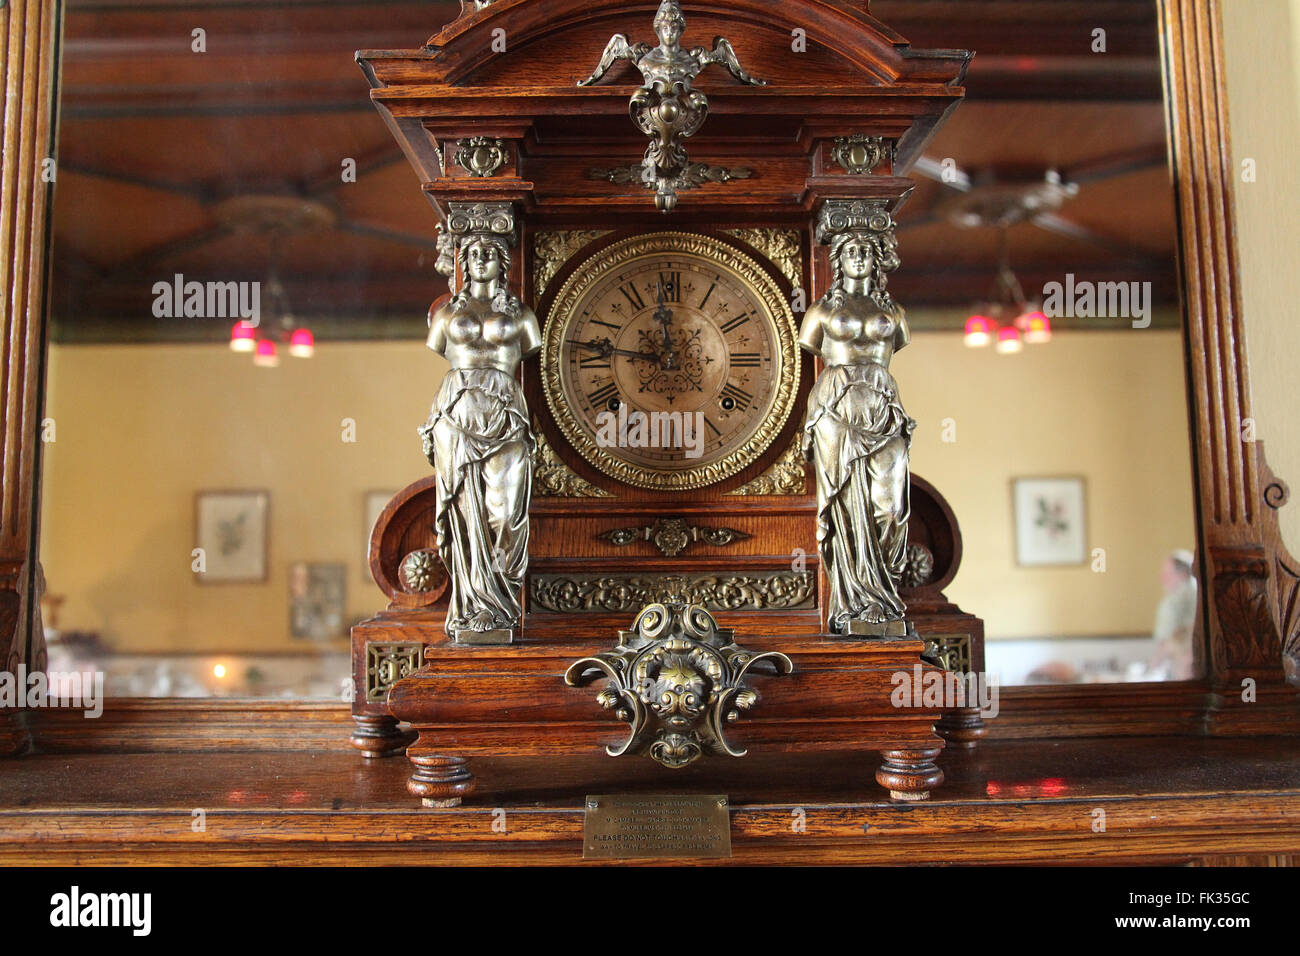 Antique Art Nouveau Clock In The Dining Room Of Lord Milner Hotel At Matjiesfontein South Africa